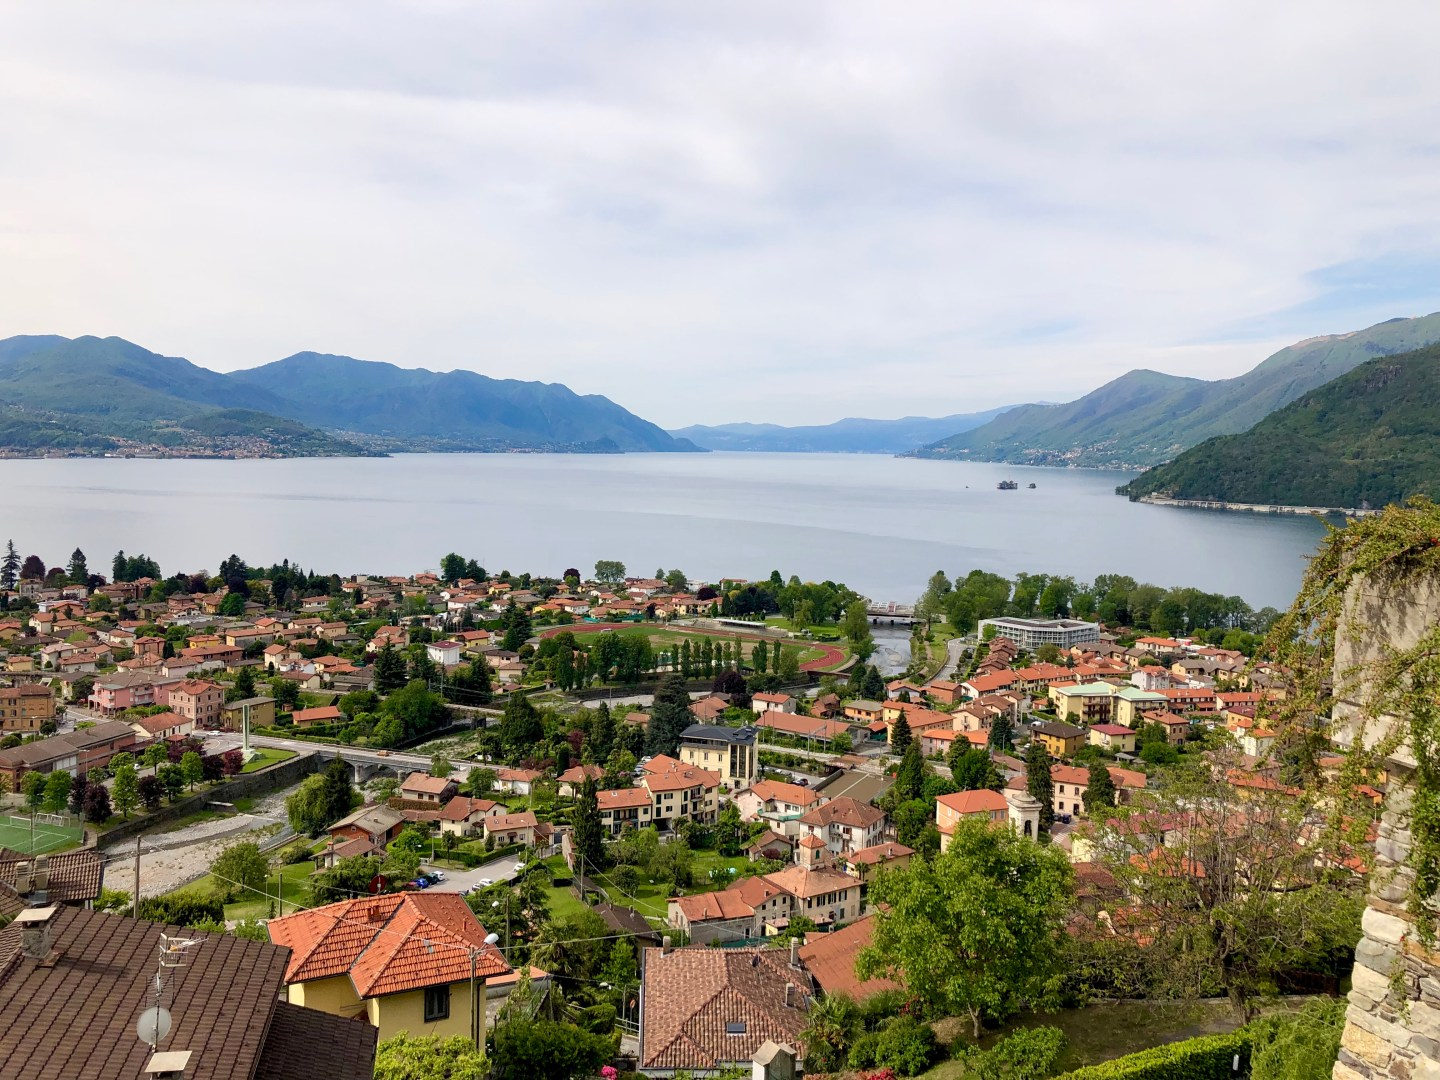 Maccagno town in Lake maggiore. Itsposition on thebank of the river isremarkable if youstand on the shore of Maccagno you can see across the shore to thebeautiful town of Cannibio and furtherdown the down in toSwitzerland and the town of Brissano.